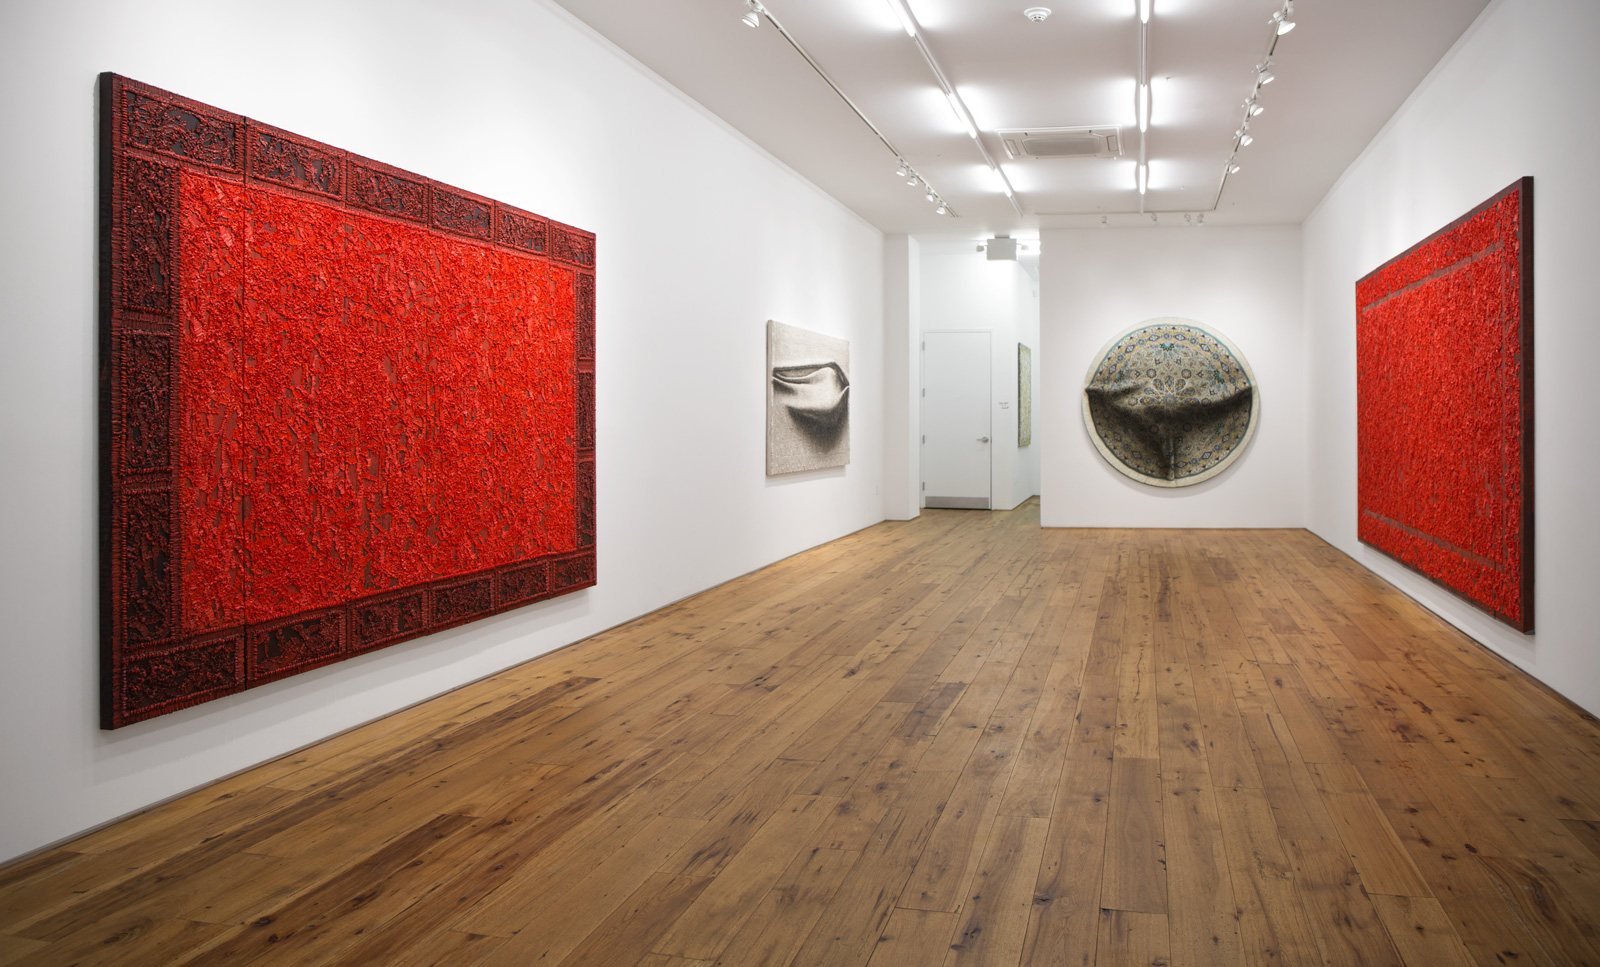 Antonio Santin, Marc Straus Gallery, February 2016